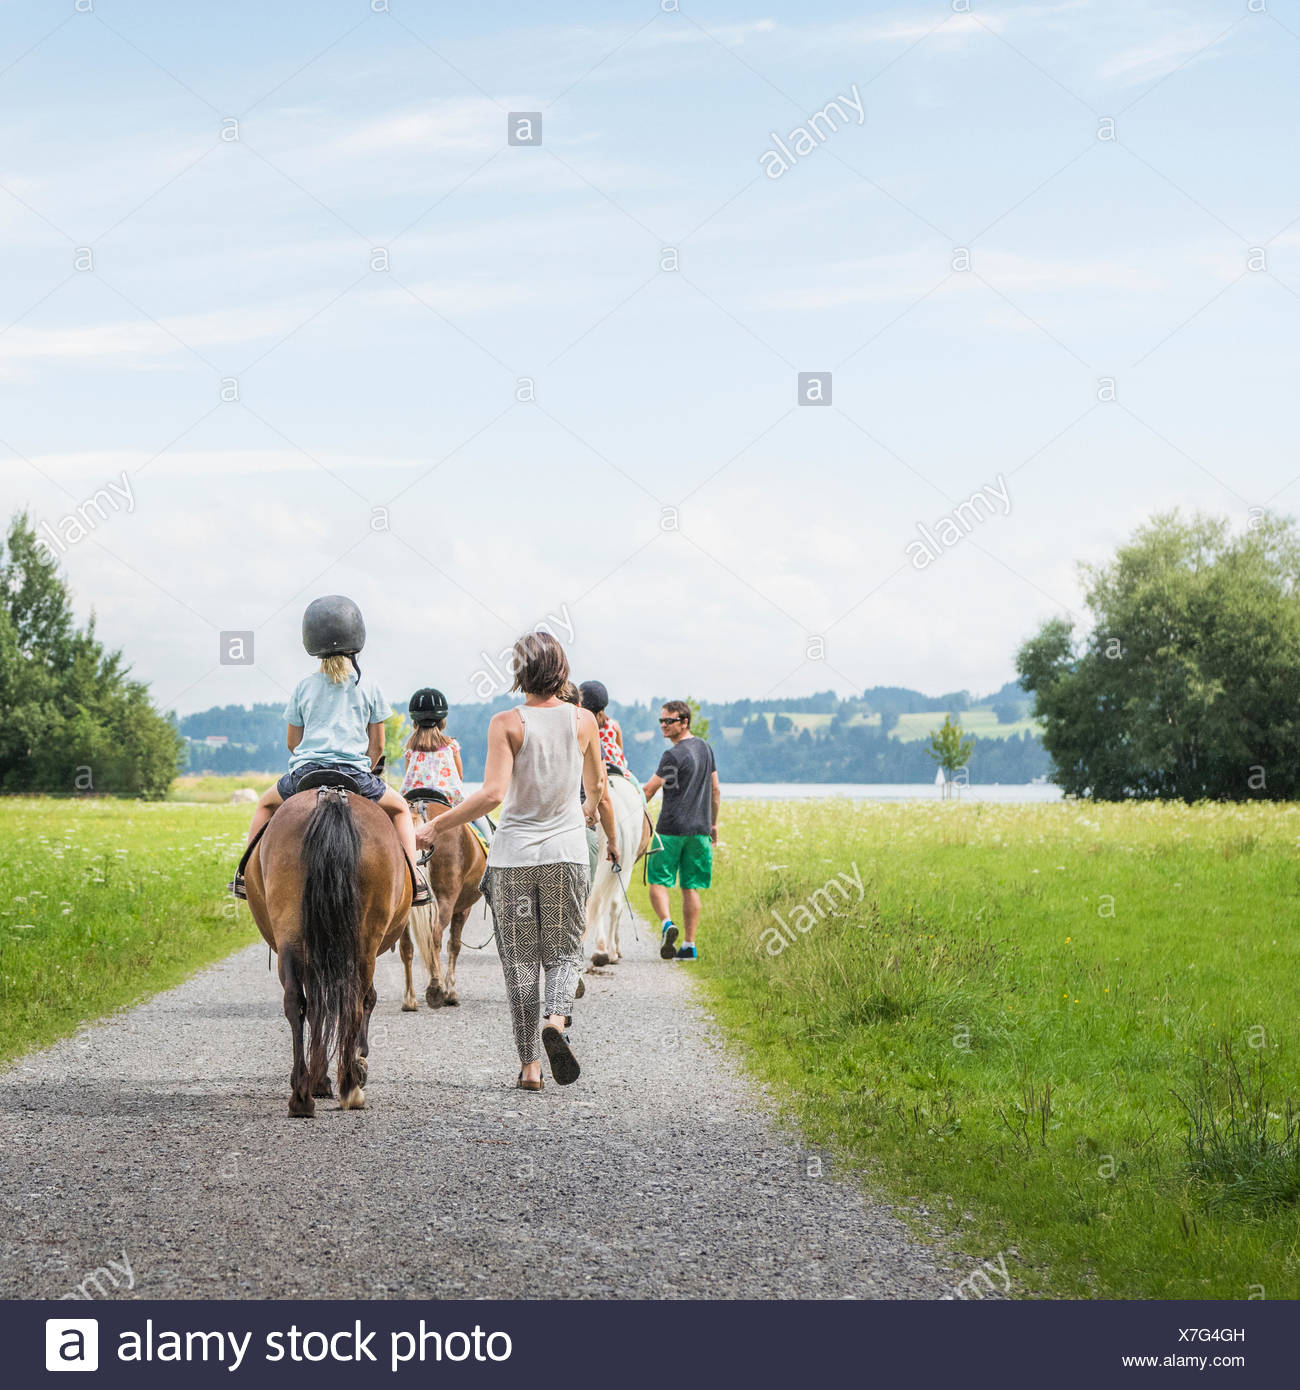 Rear view of parents guiding children on horse, Fuessen, Bavaria, Germany - Stock Image